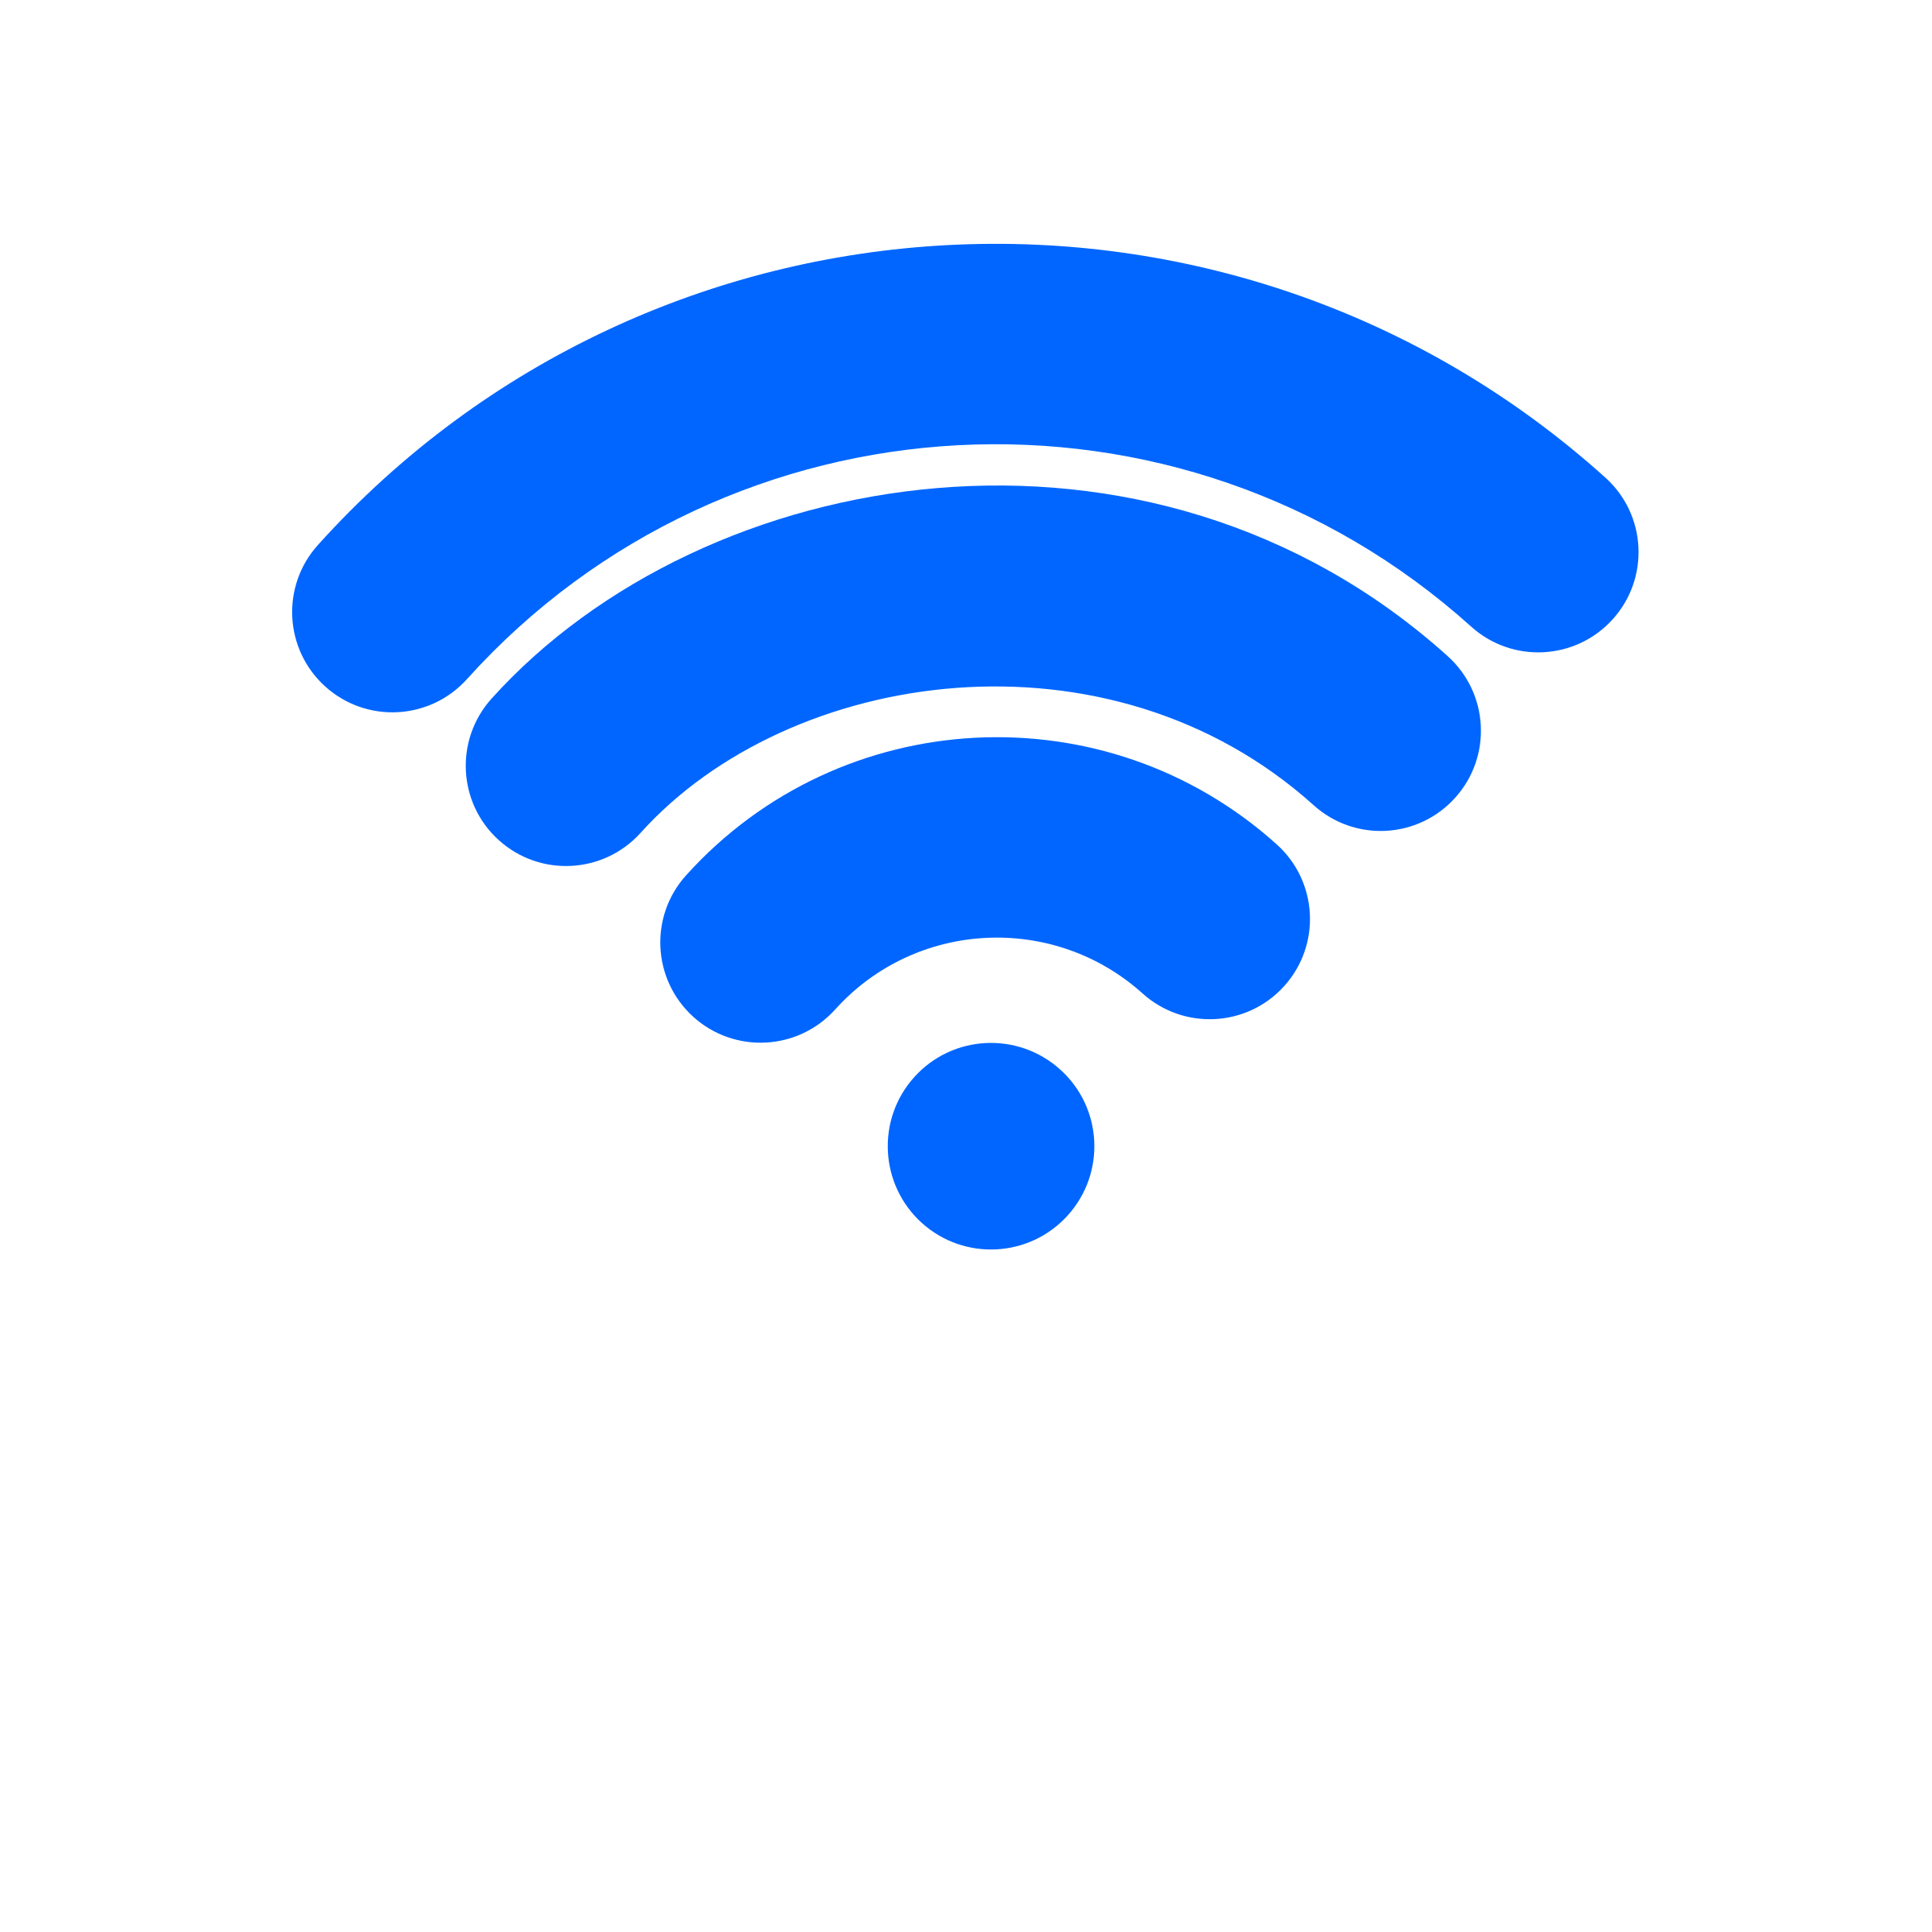 Wifi symbol free clipart png freeuse download Free Wifi Symbol Cliparts, Download Free Clip Art, Free Clip ... png freeuse download